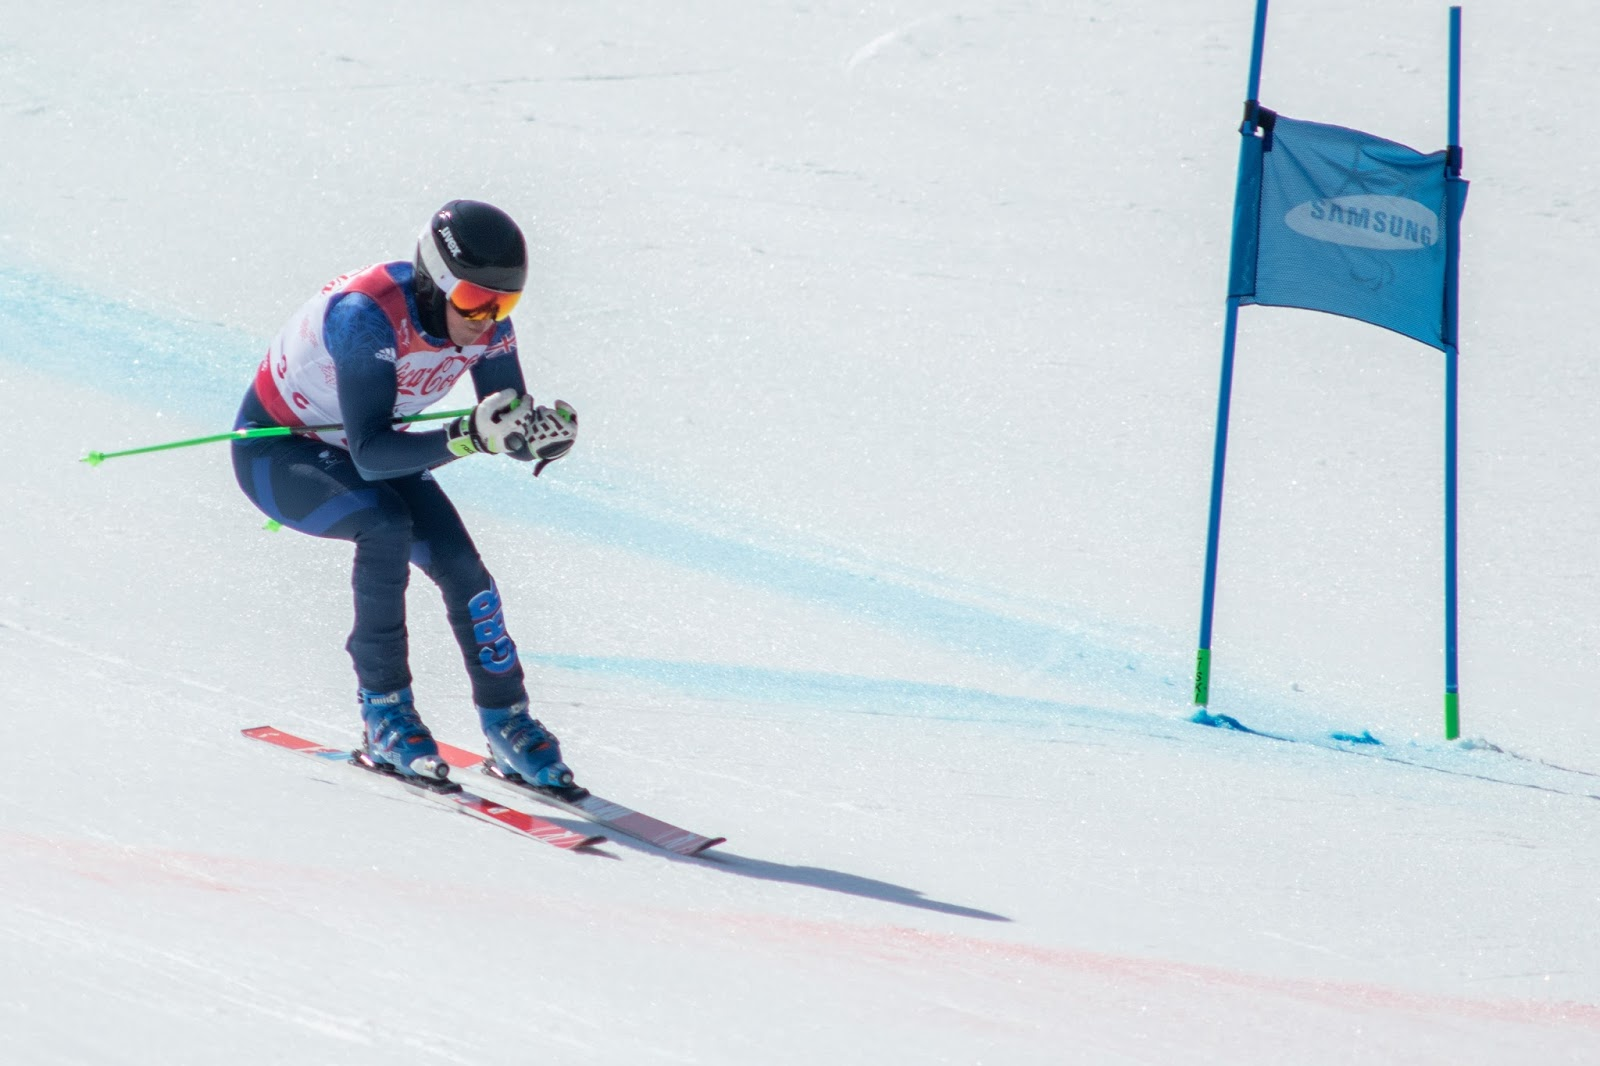 Man is skiing down a hill, wearing a blue ski suit with red skis and green ski poles.